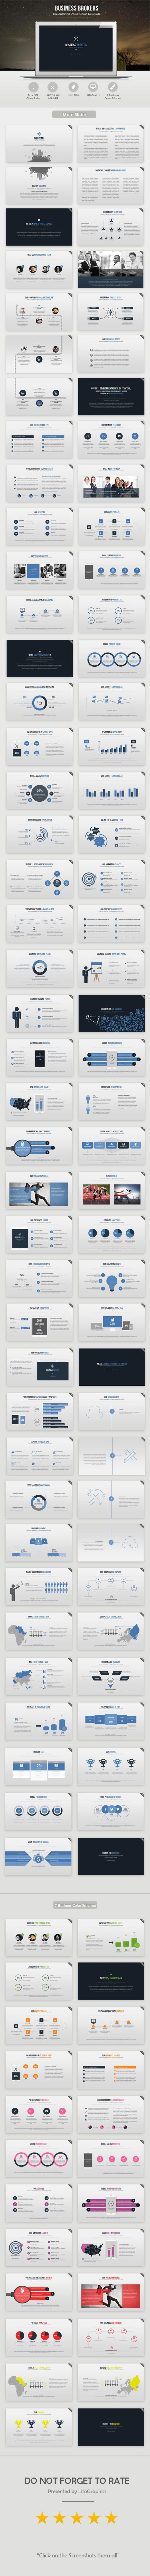 Business Brokers Powerpoint Template - Business PowerPoint Templates